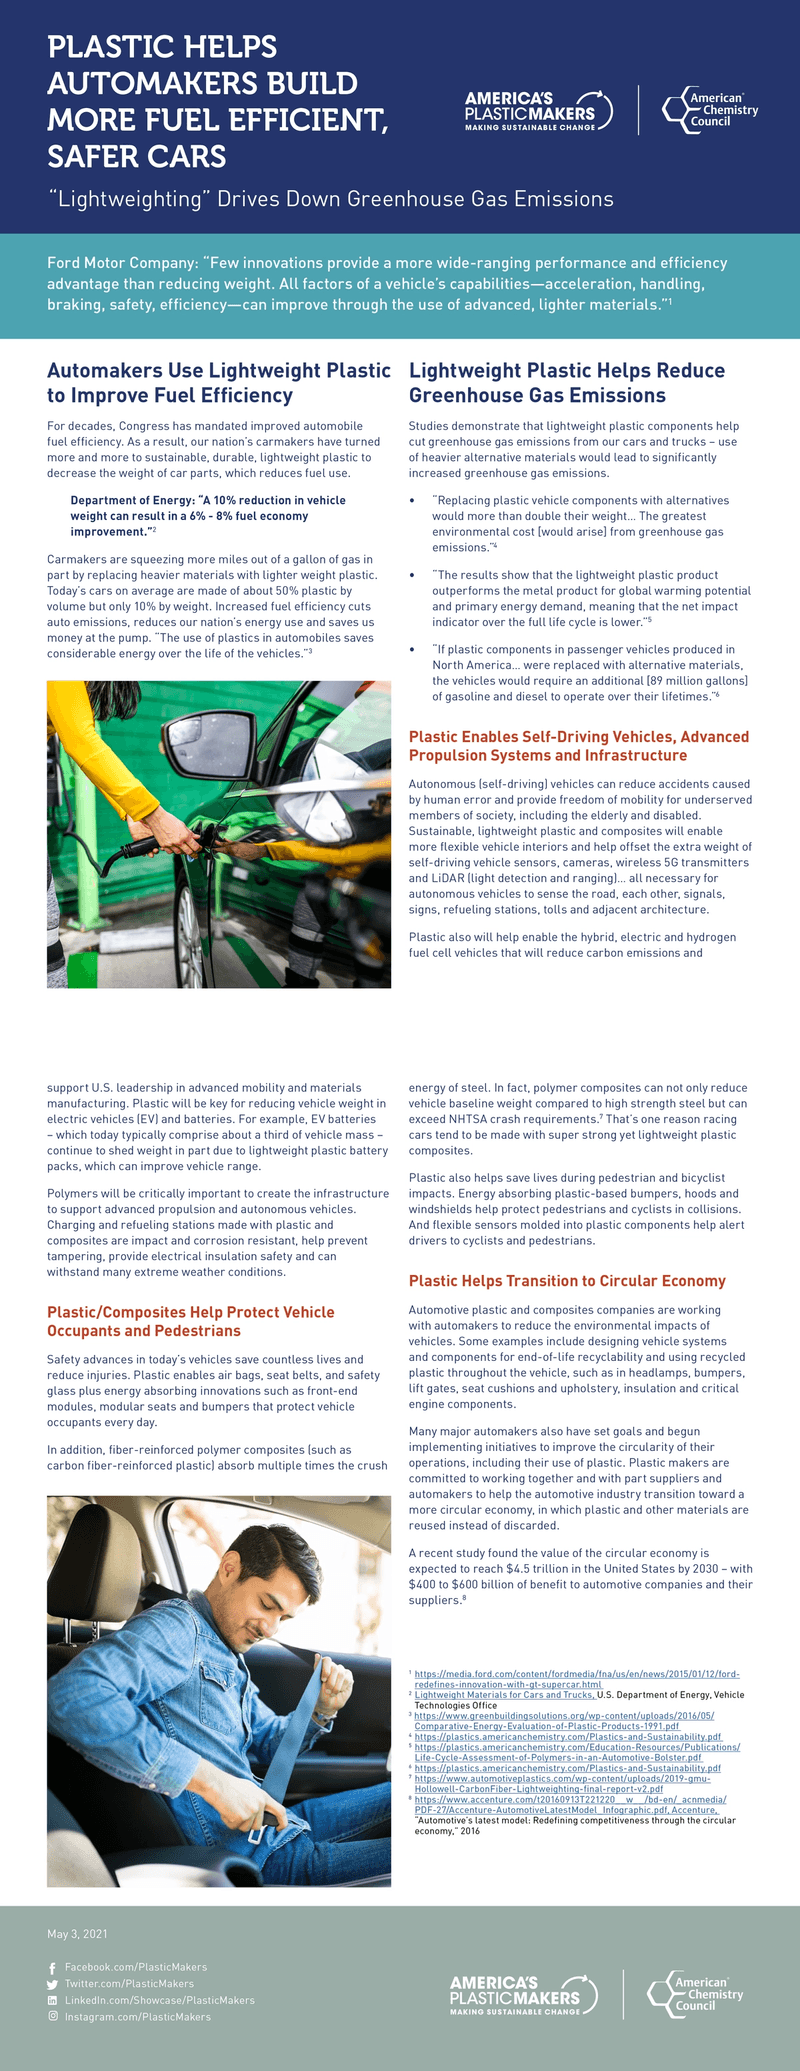 Fact Sheet: Plastic Helps Automakers Build More Fuel Efficient, Safer Cars